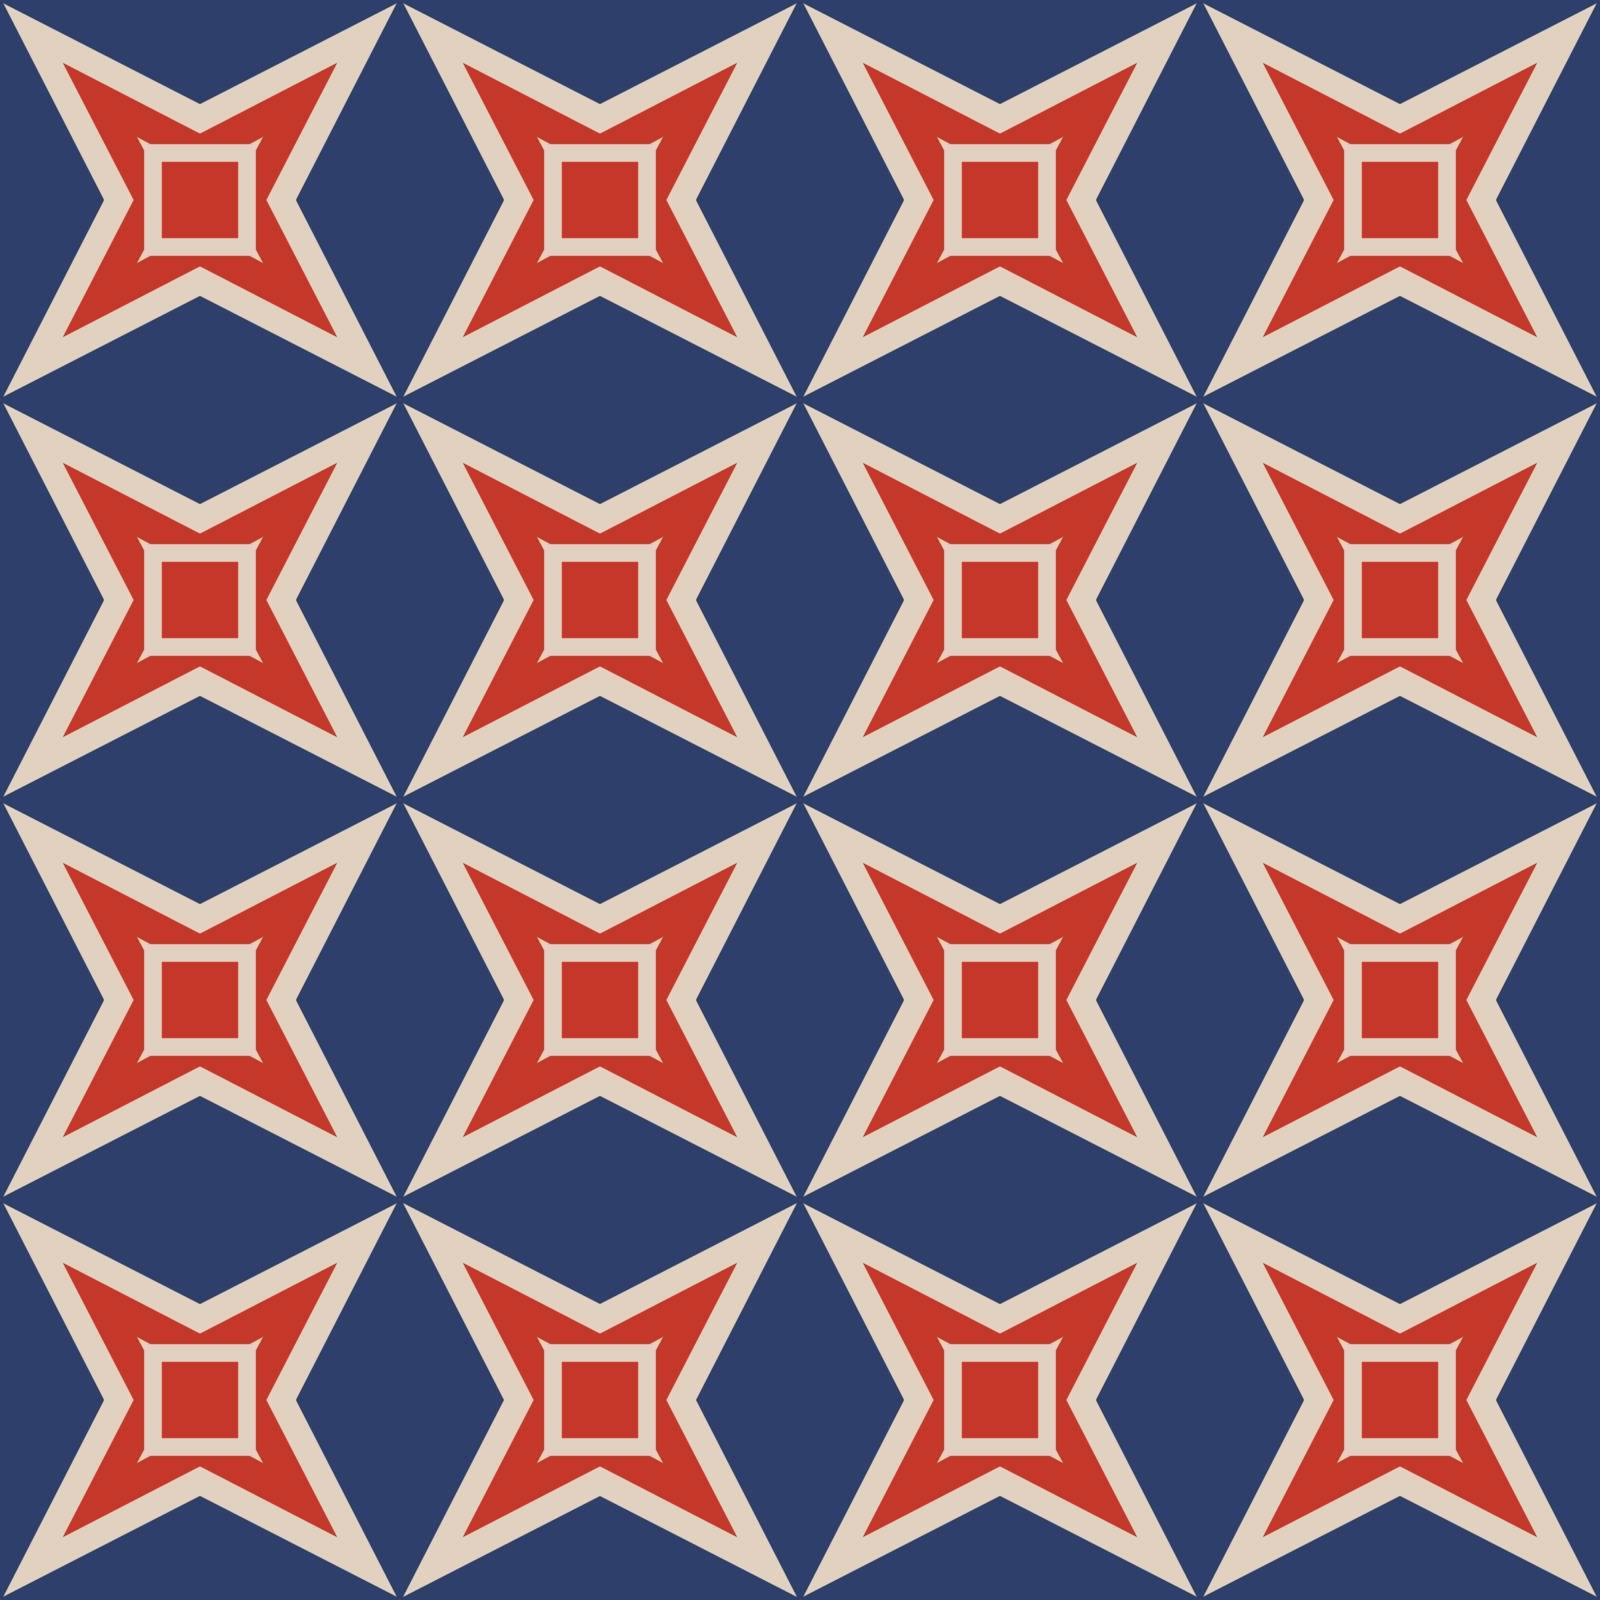 Seamless illustrated pattern made of abstract elements in beige, red and blue